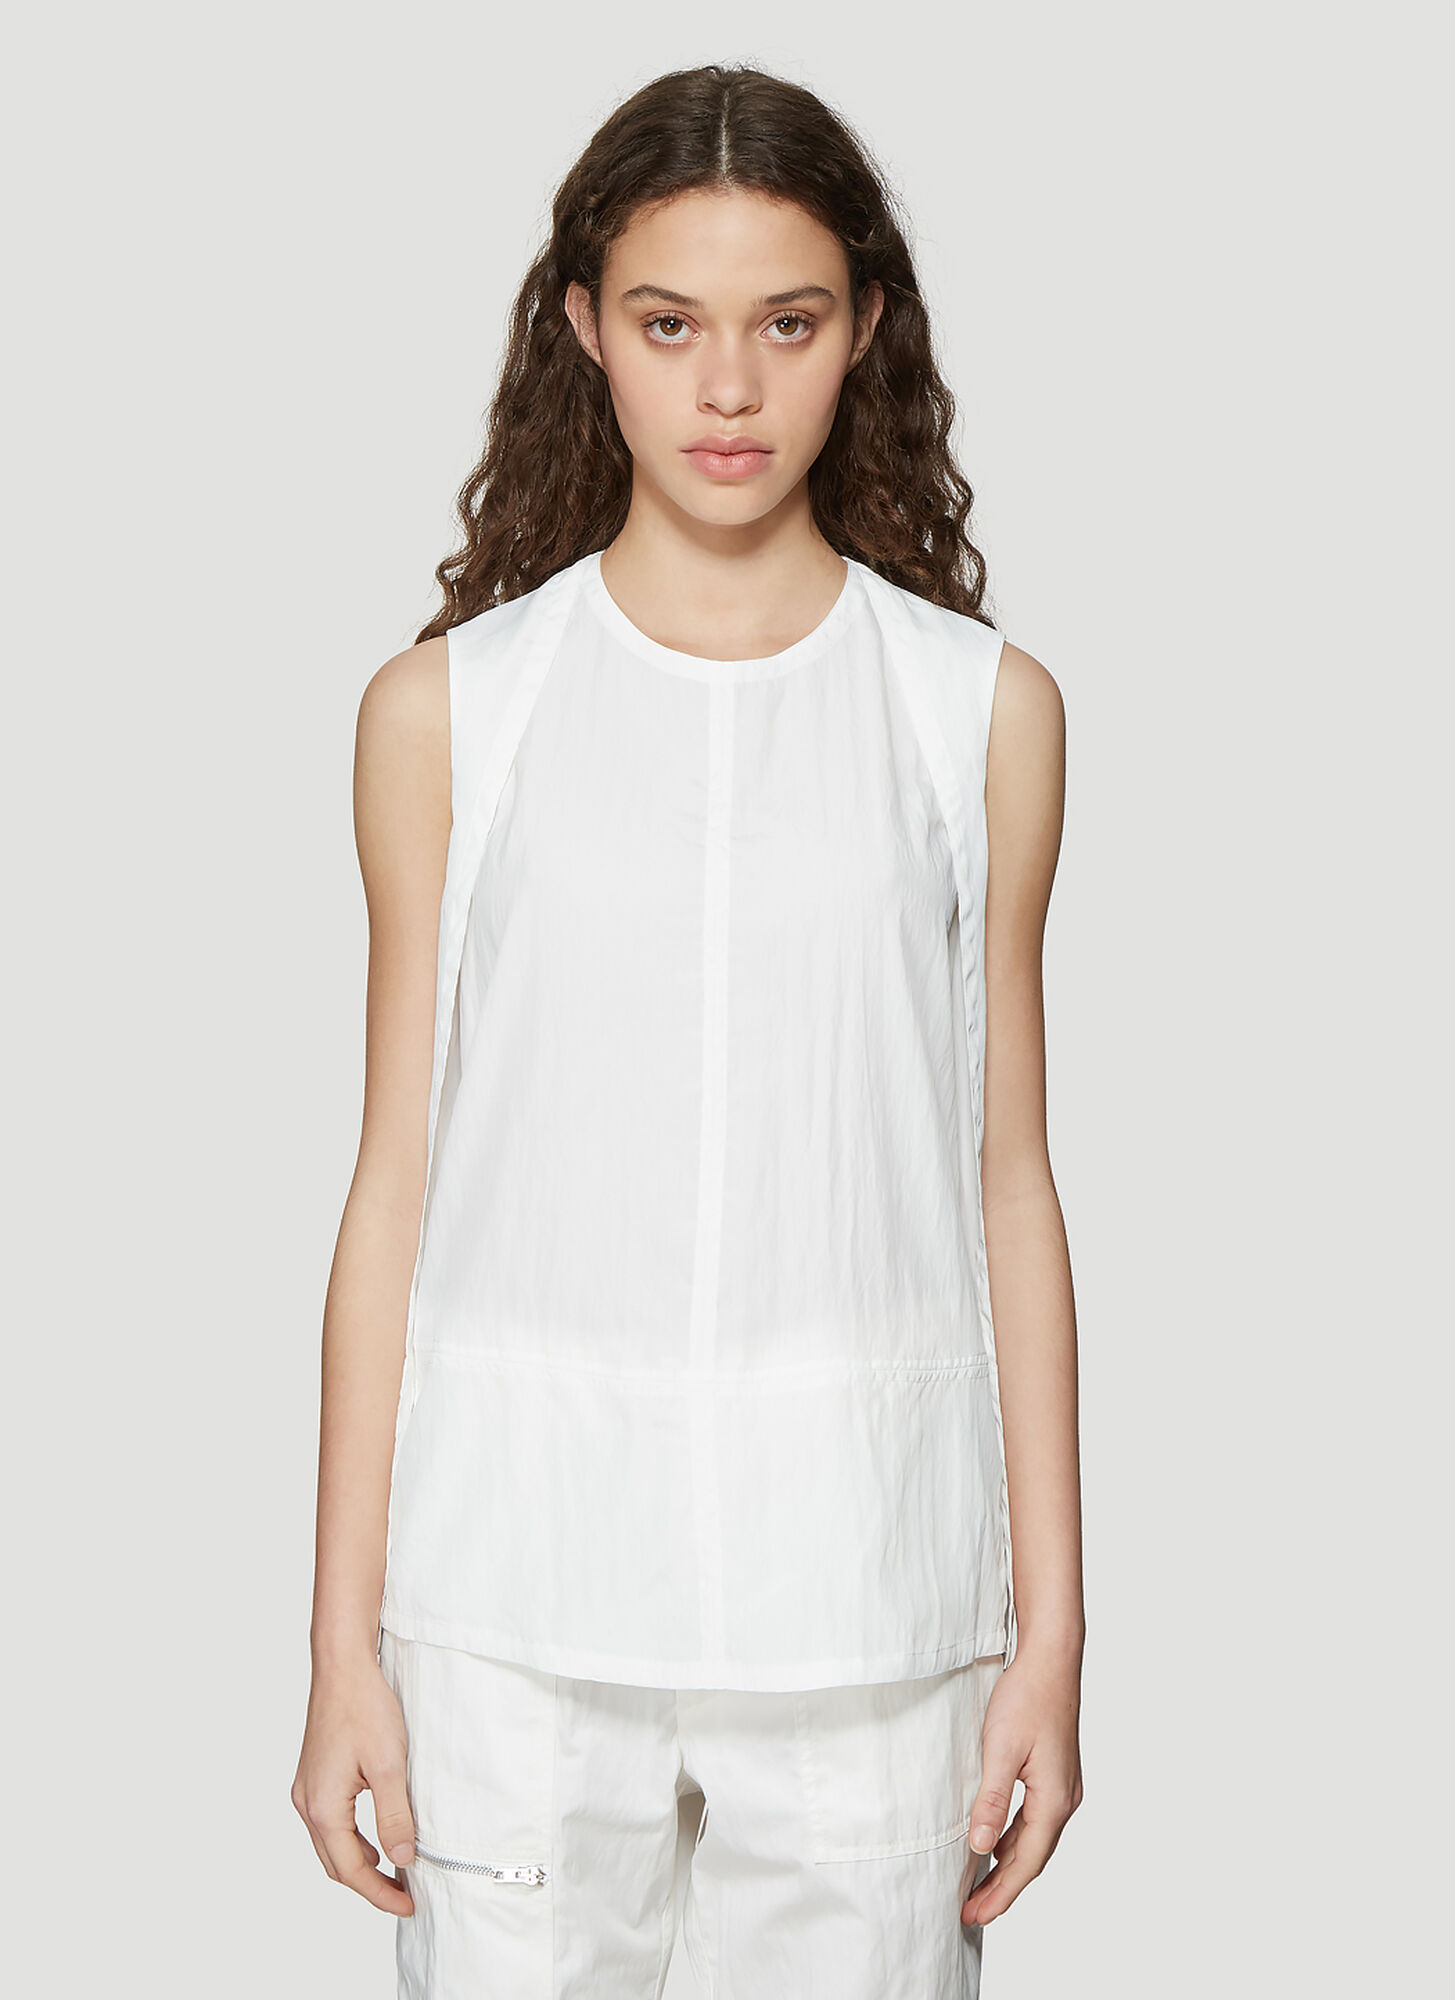 HELMUT LANG | Helmut Lang Sheer Parachute Top In White Size L | Goxip